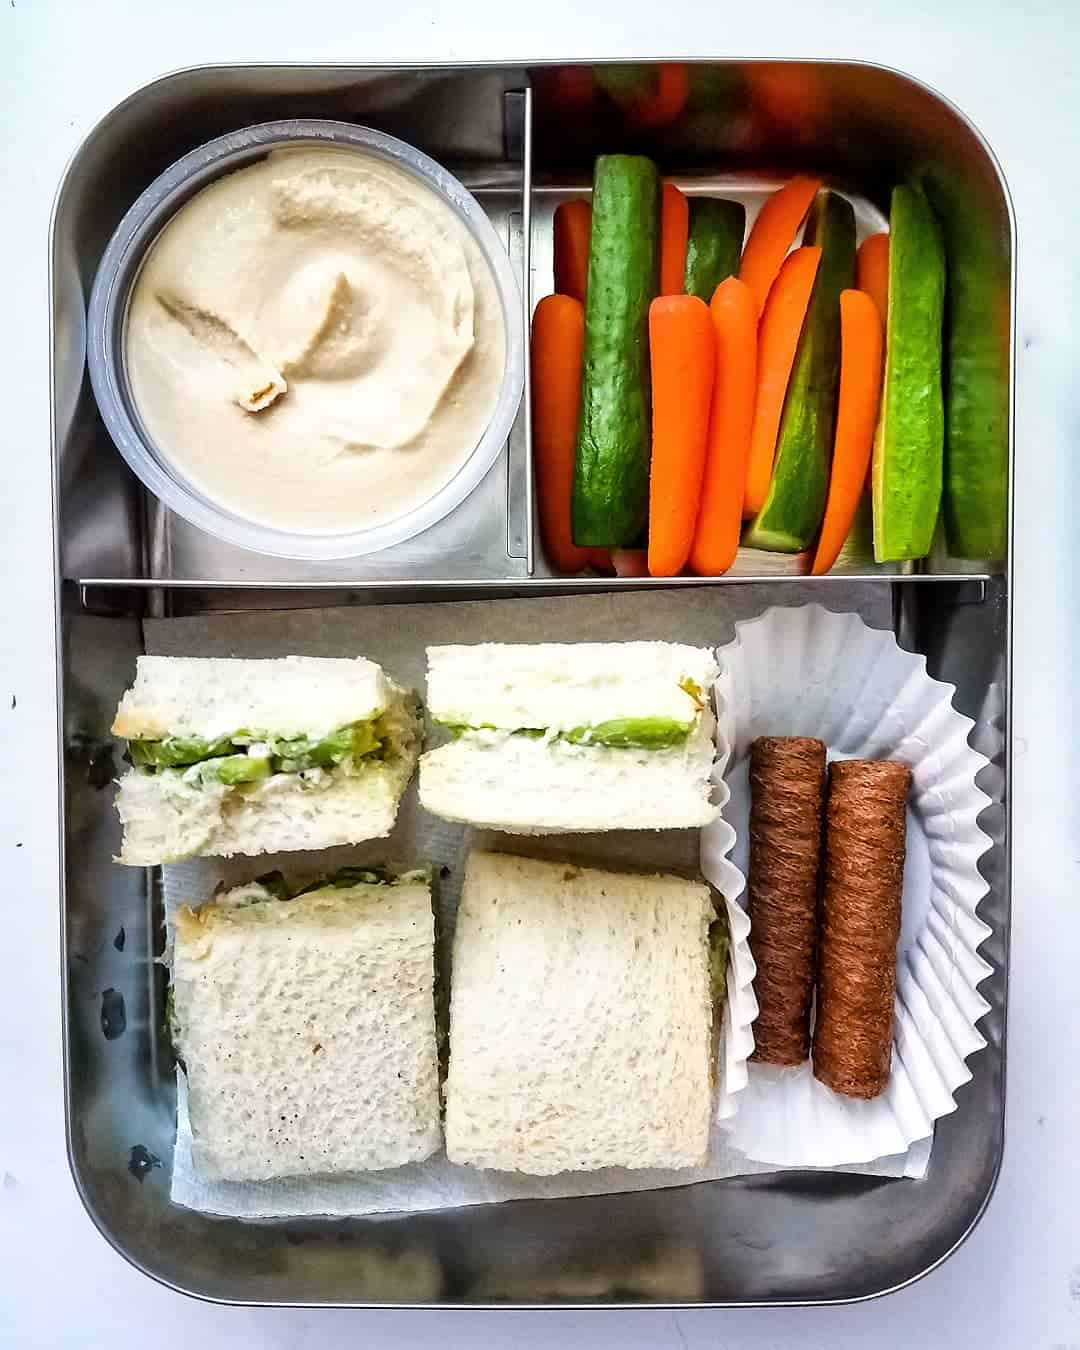 Avocado Sandwich, hummus, carrots